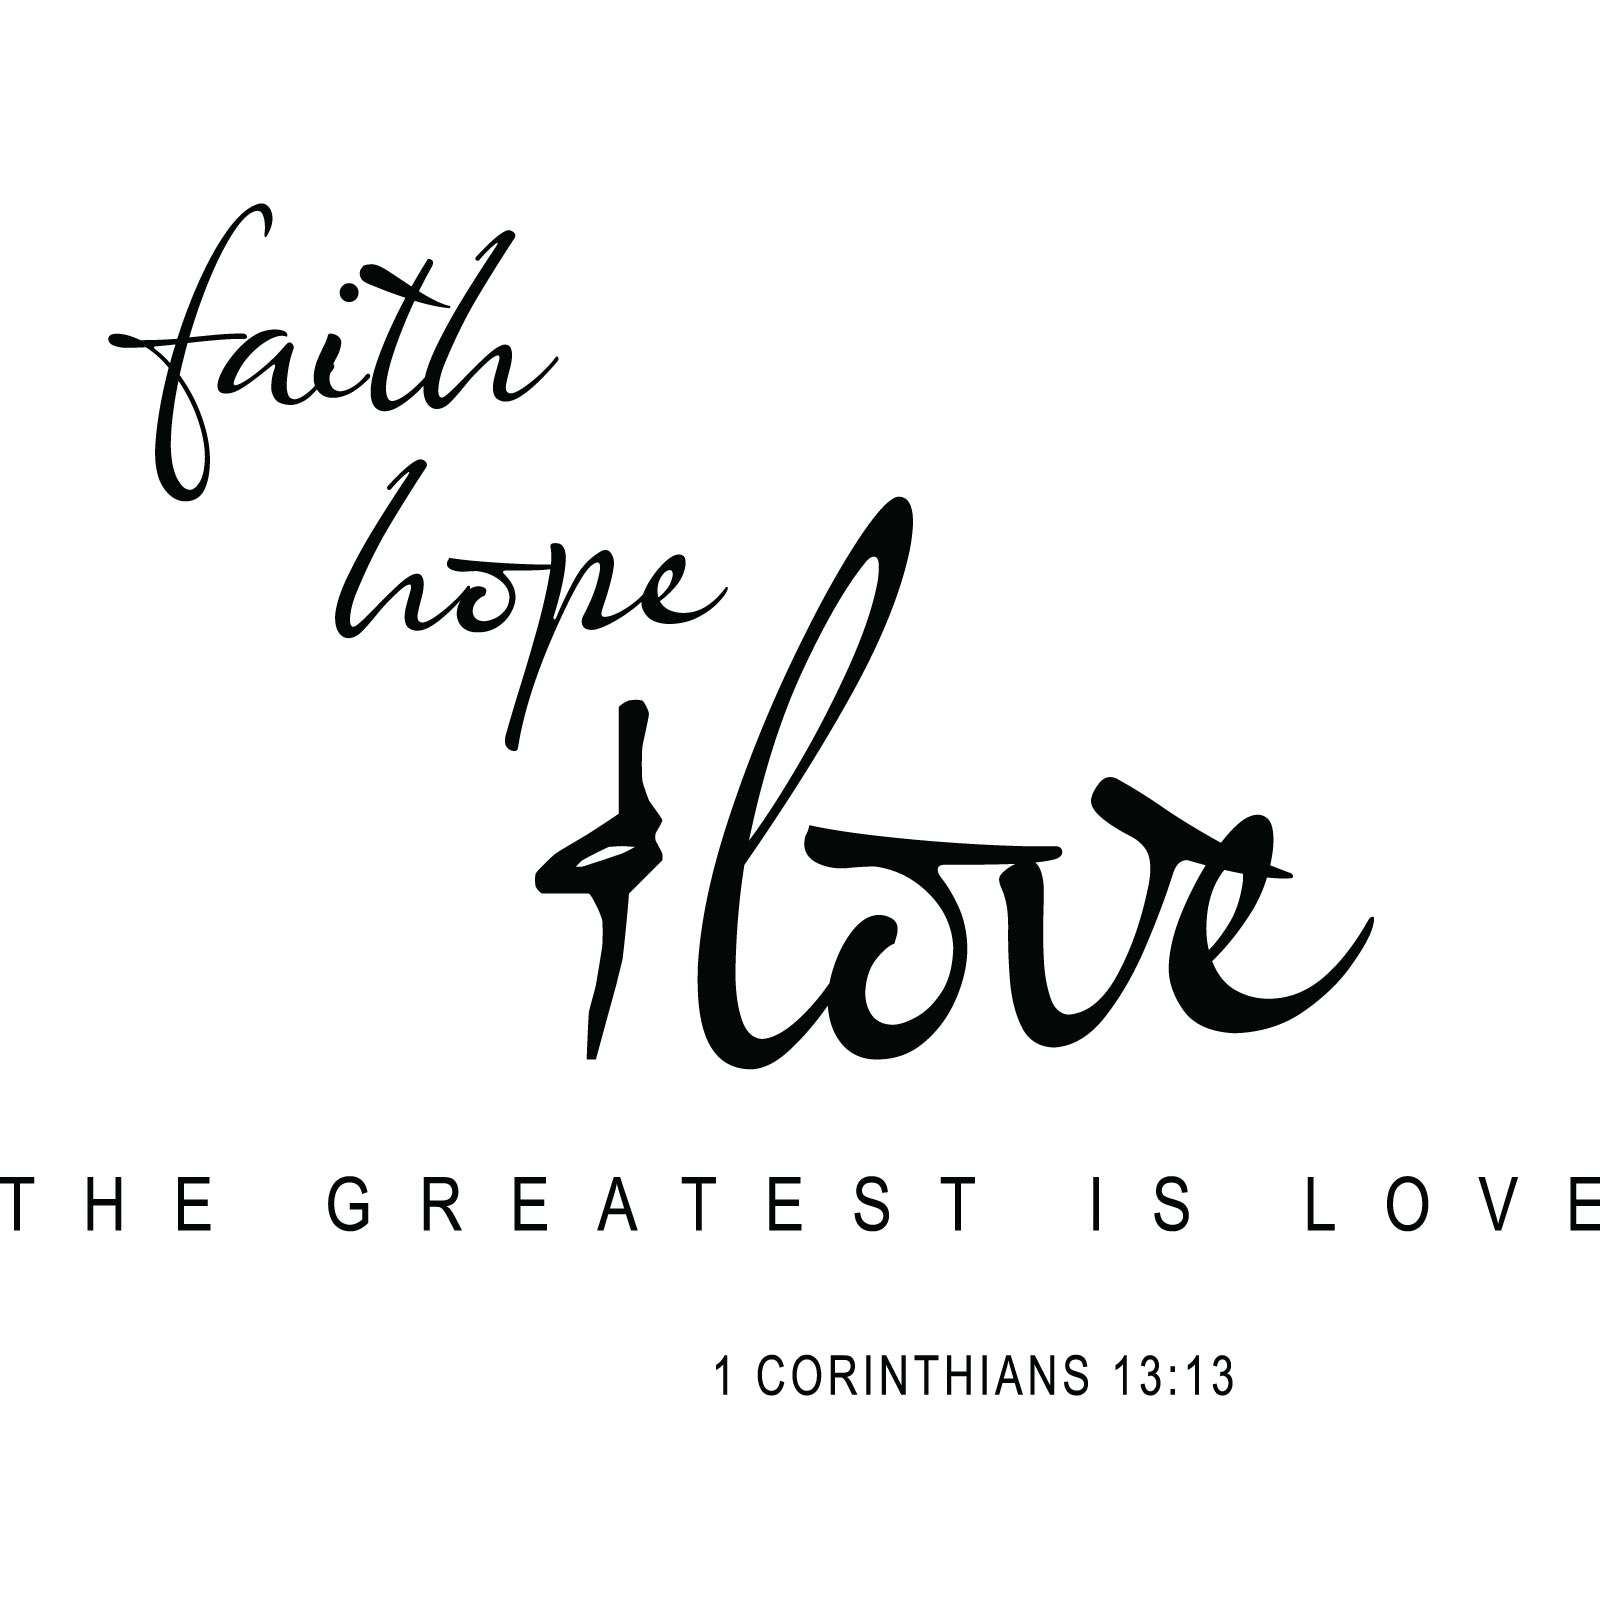 Image of: Religious Faith Hope Love Religious Quote Wall Sticker World Of Wall Stickers Faith Hope Love Religious Quote Wall Sticker World Of Wall Stickers